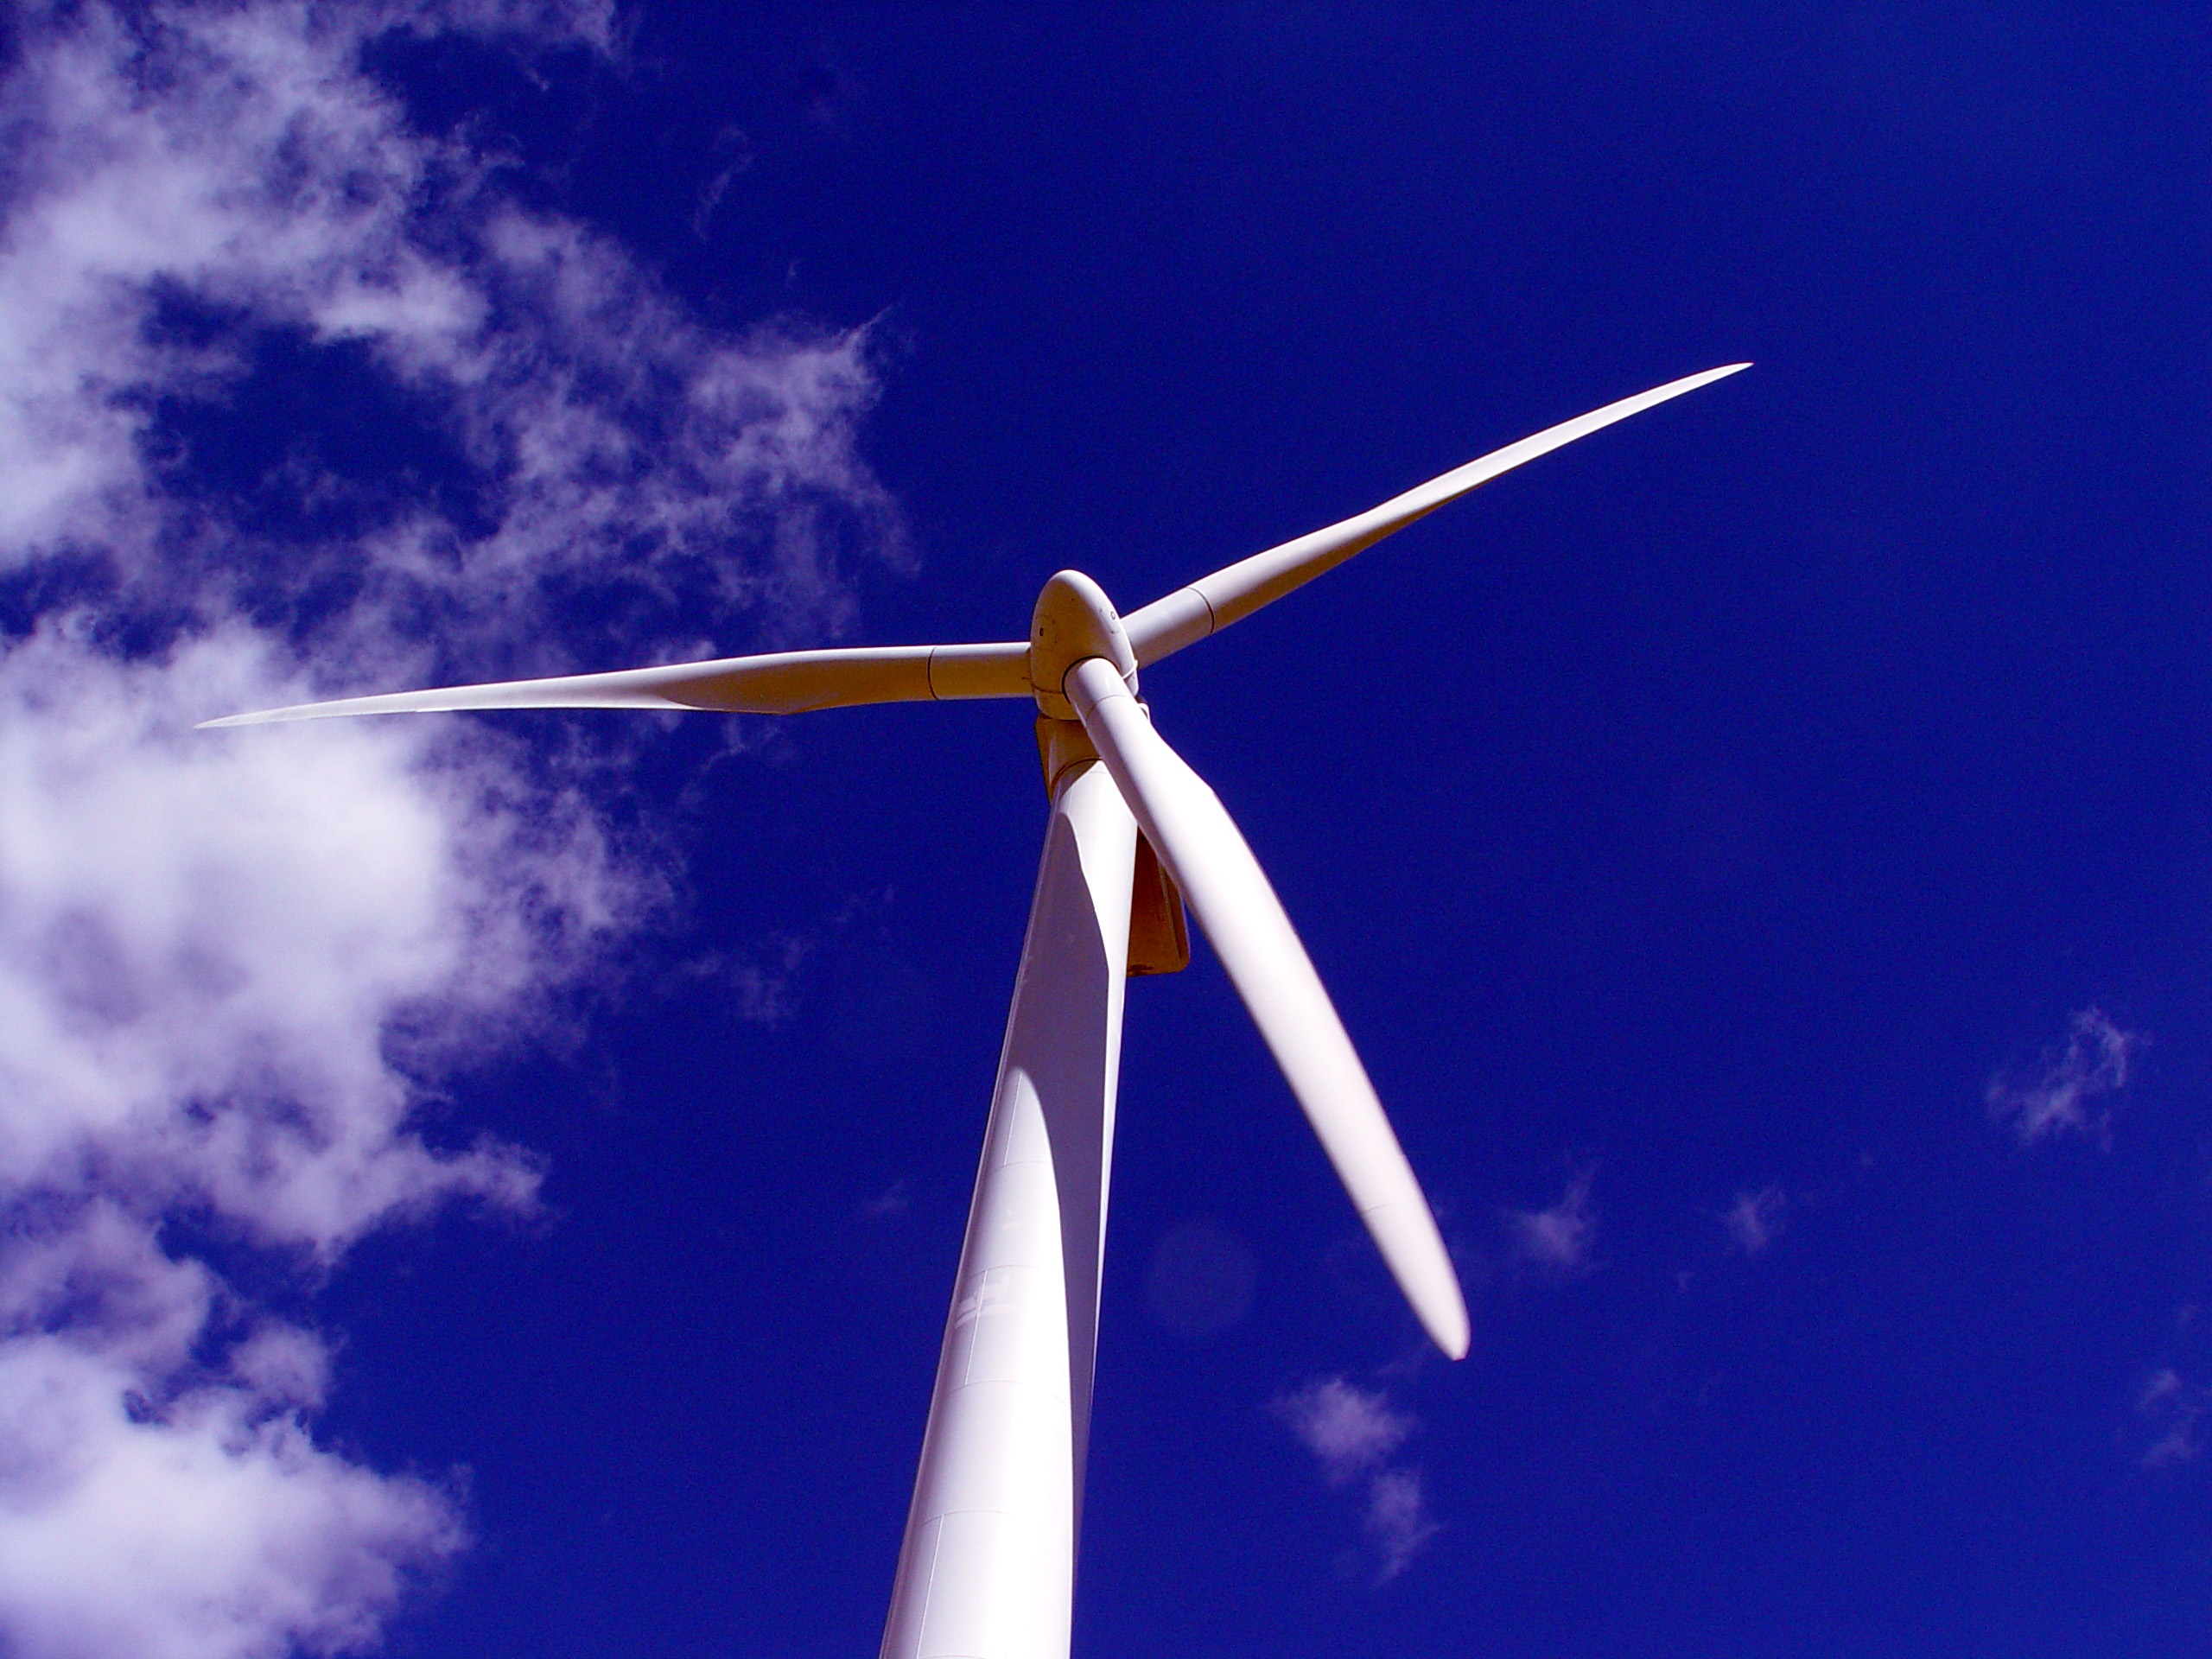 Wind turbine blades are made from fiberglass composites and adhesives